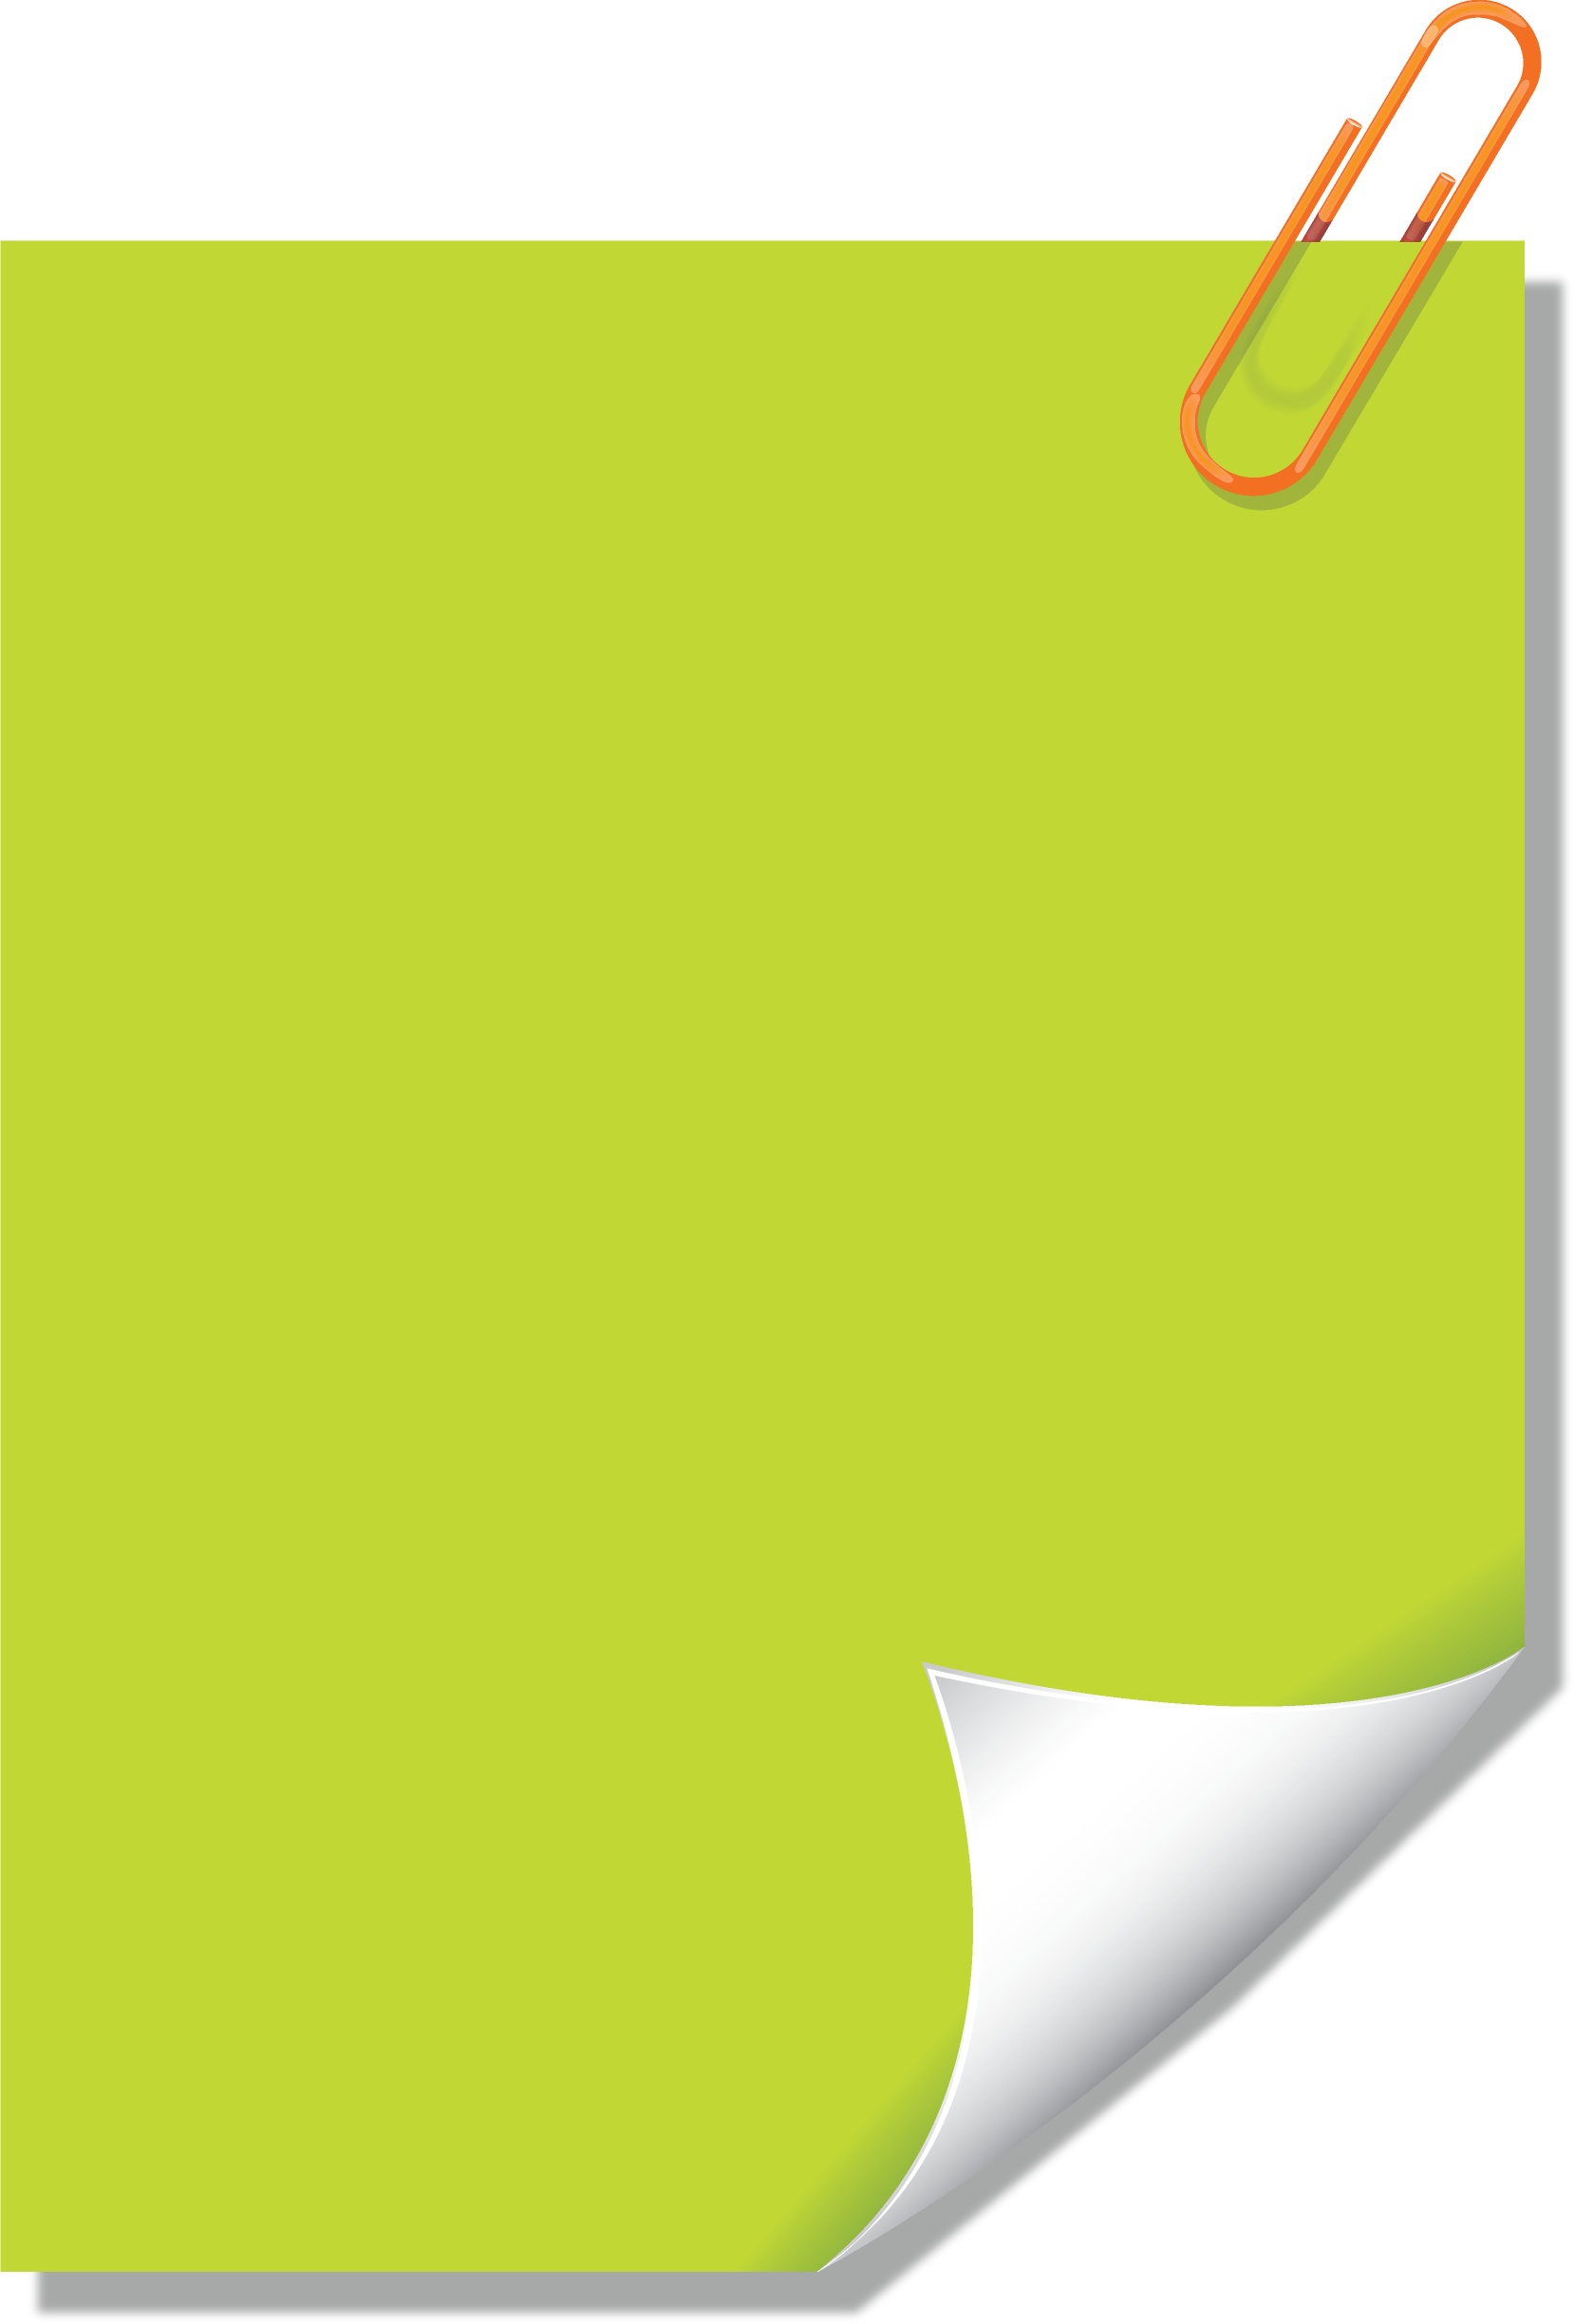 Green clipart sticky note. Notes png image purepng